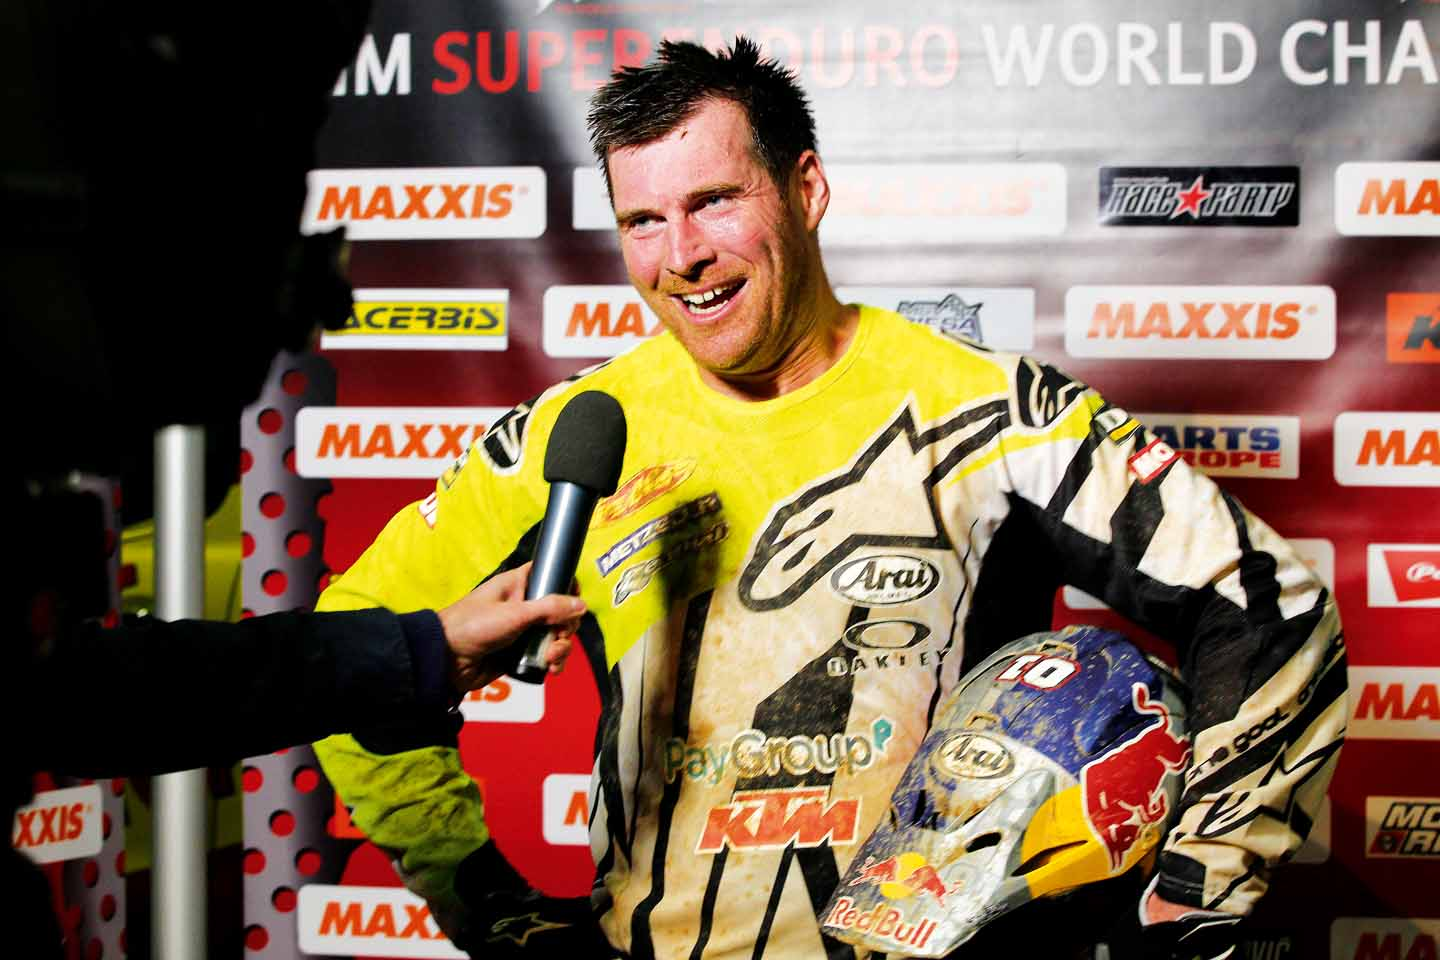 David Knight gives an interview during FIM Super Enduro World Championship in Riesa, Germany on January 3rd, 2015 // ABC COM / Red Bull Content Pool // P-20150105-00036 // Usage for editorial use only // Please go to www.redbullcontentpool.com for further information. //